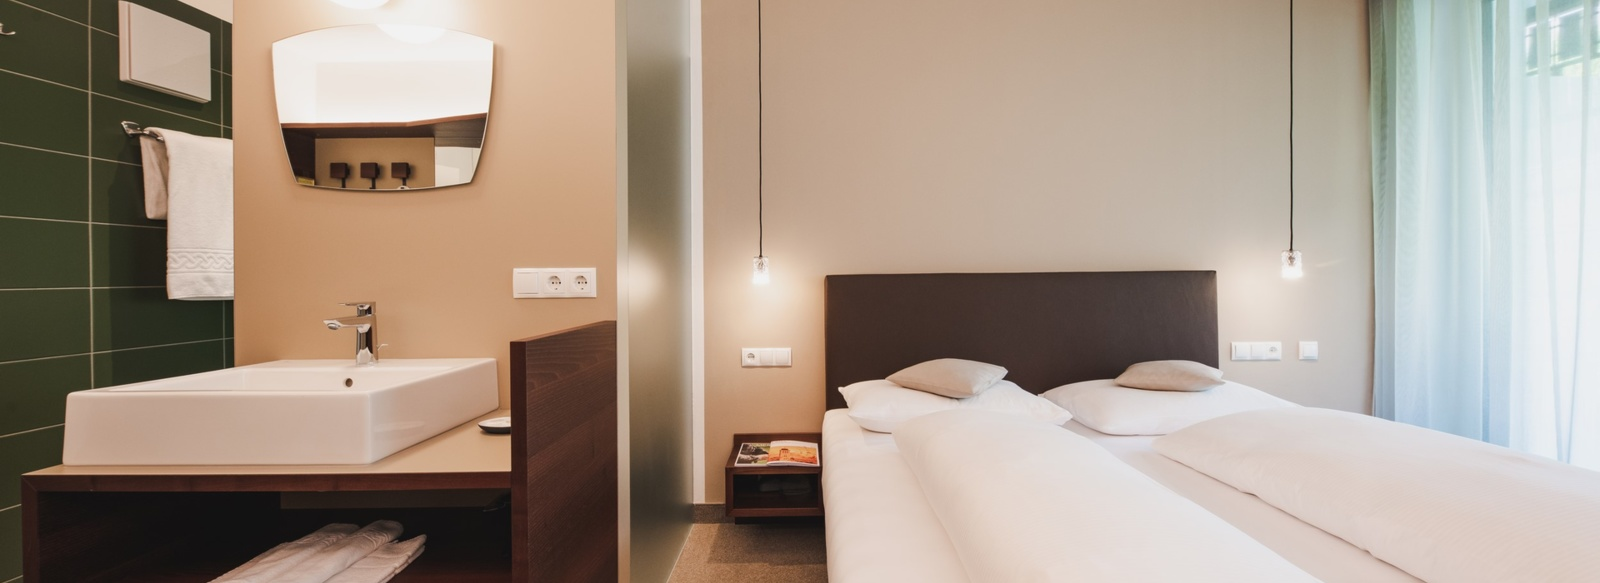 Le camere dell'Hotel Braunsbergerhof a Lana